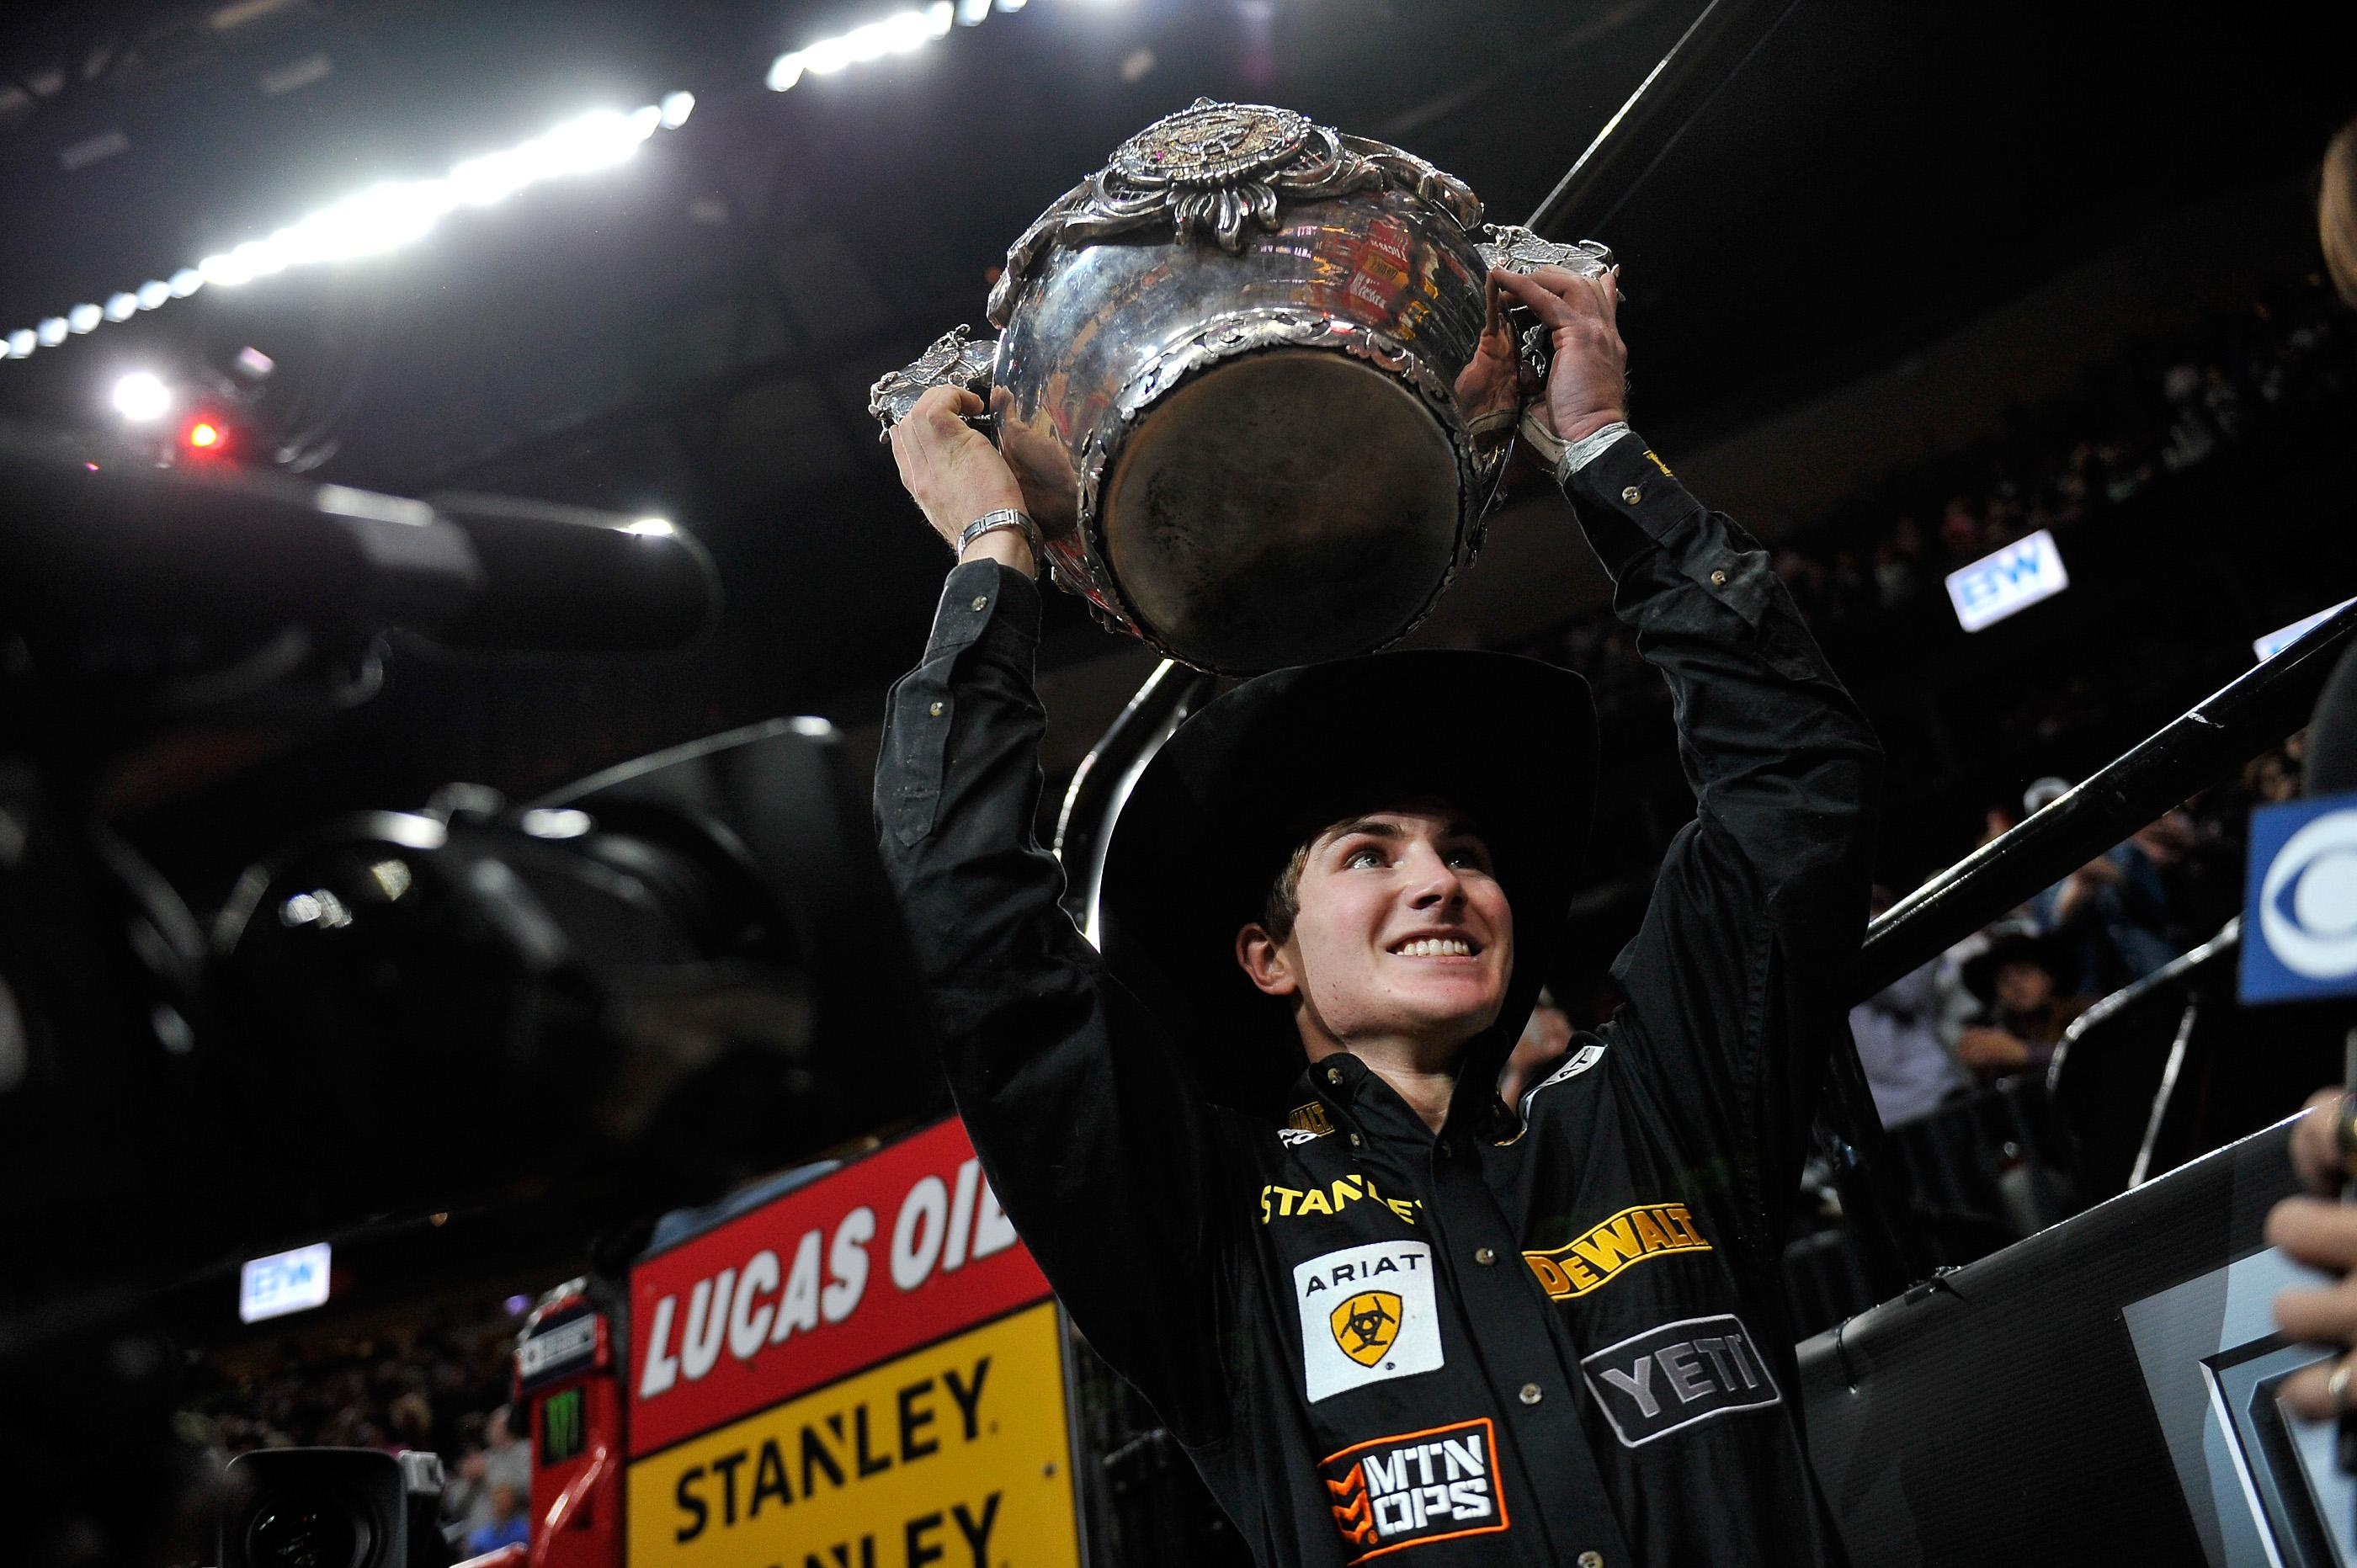 Jess Lockwood smiles with a trophy after being named the 2017 PBR World Champion at the PBR World Finals at T-Mobile Arena Sunday, Nov. 5, 2017, in Las Vegas. [David Becker/Las Vegas News Bureau]